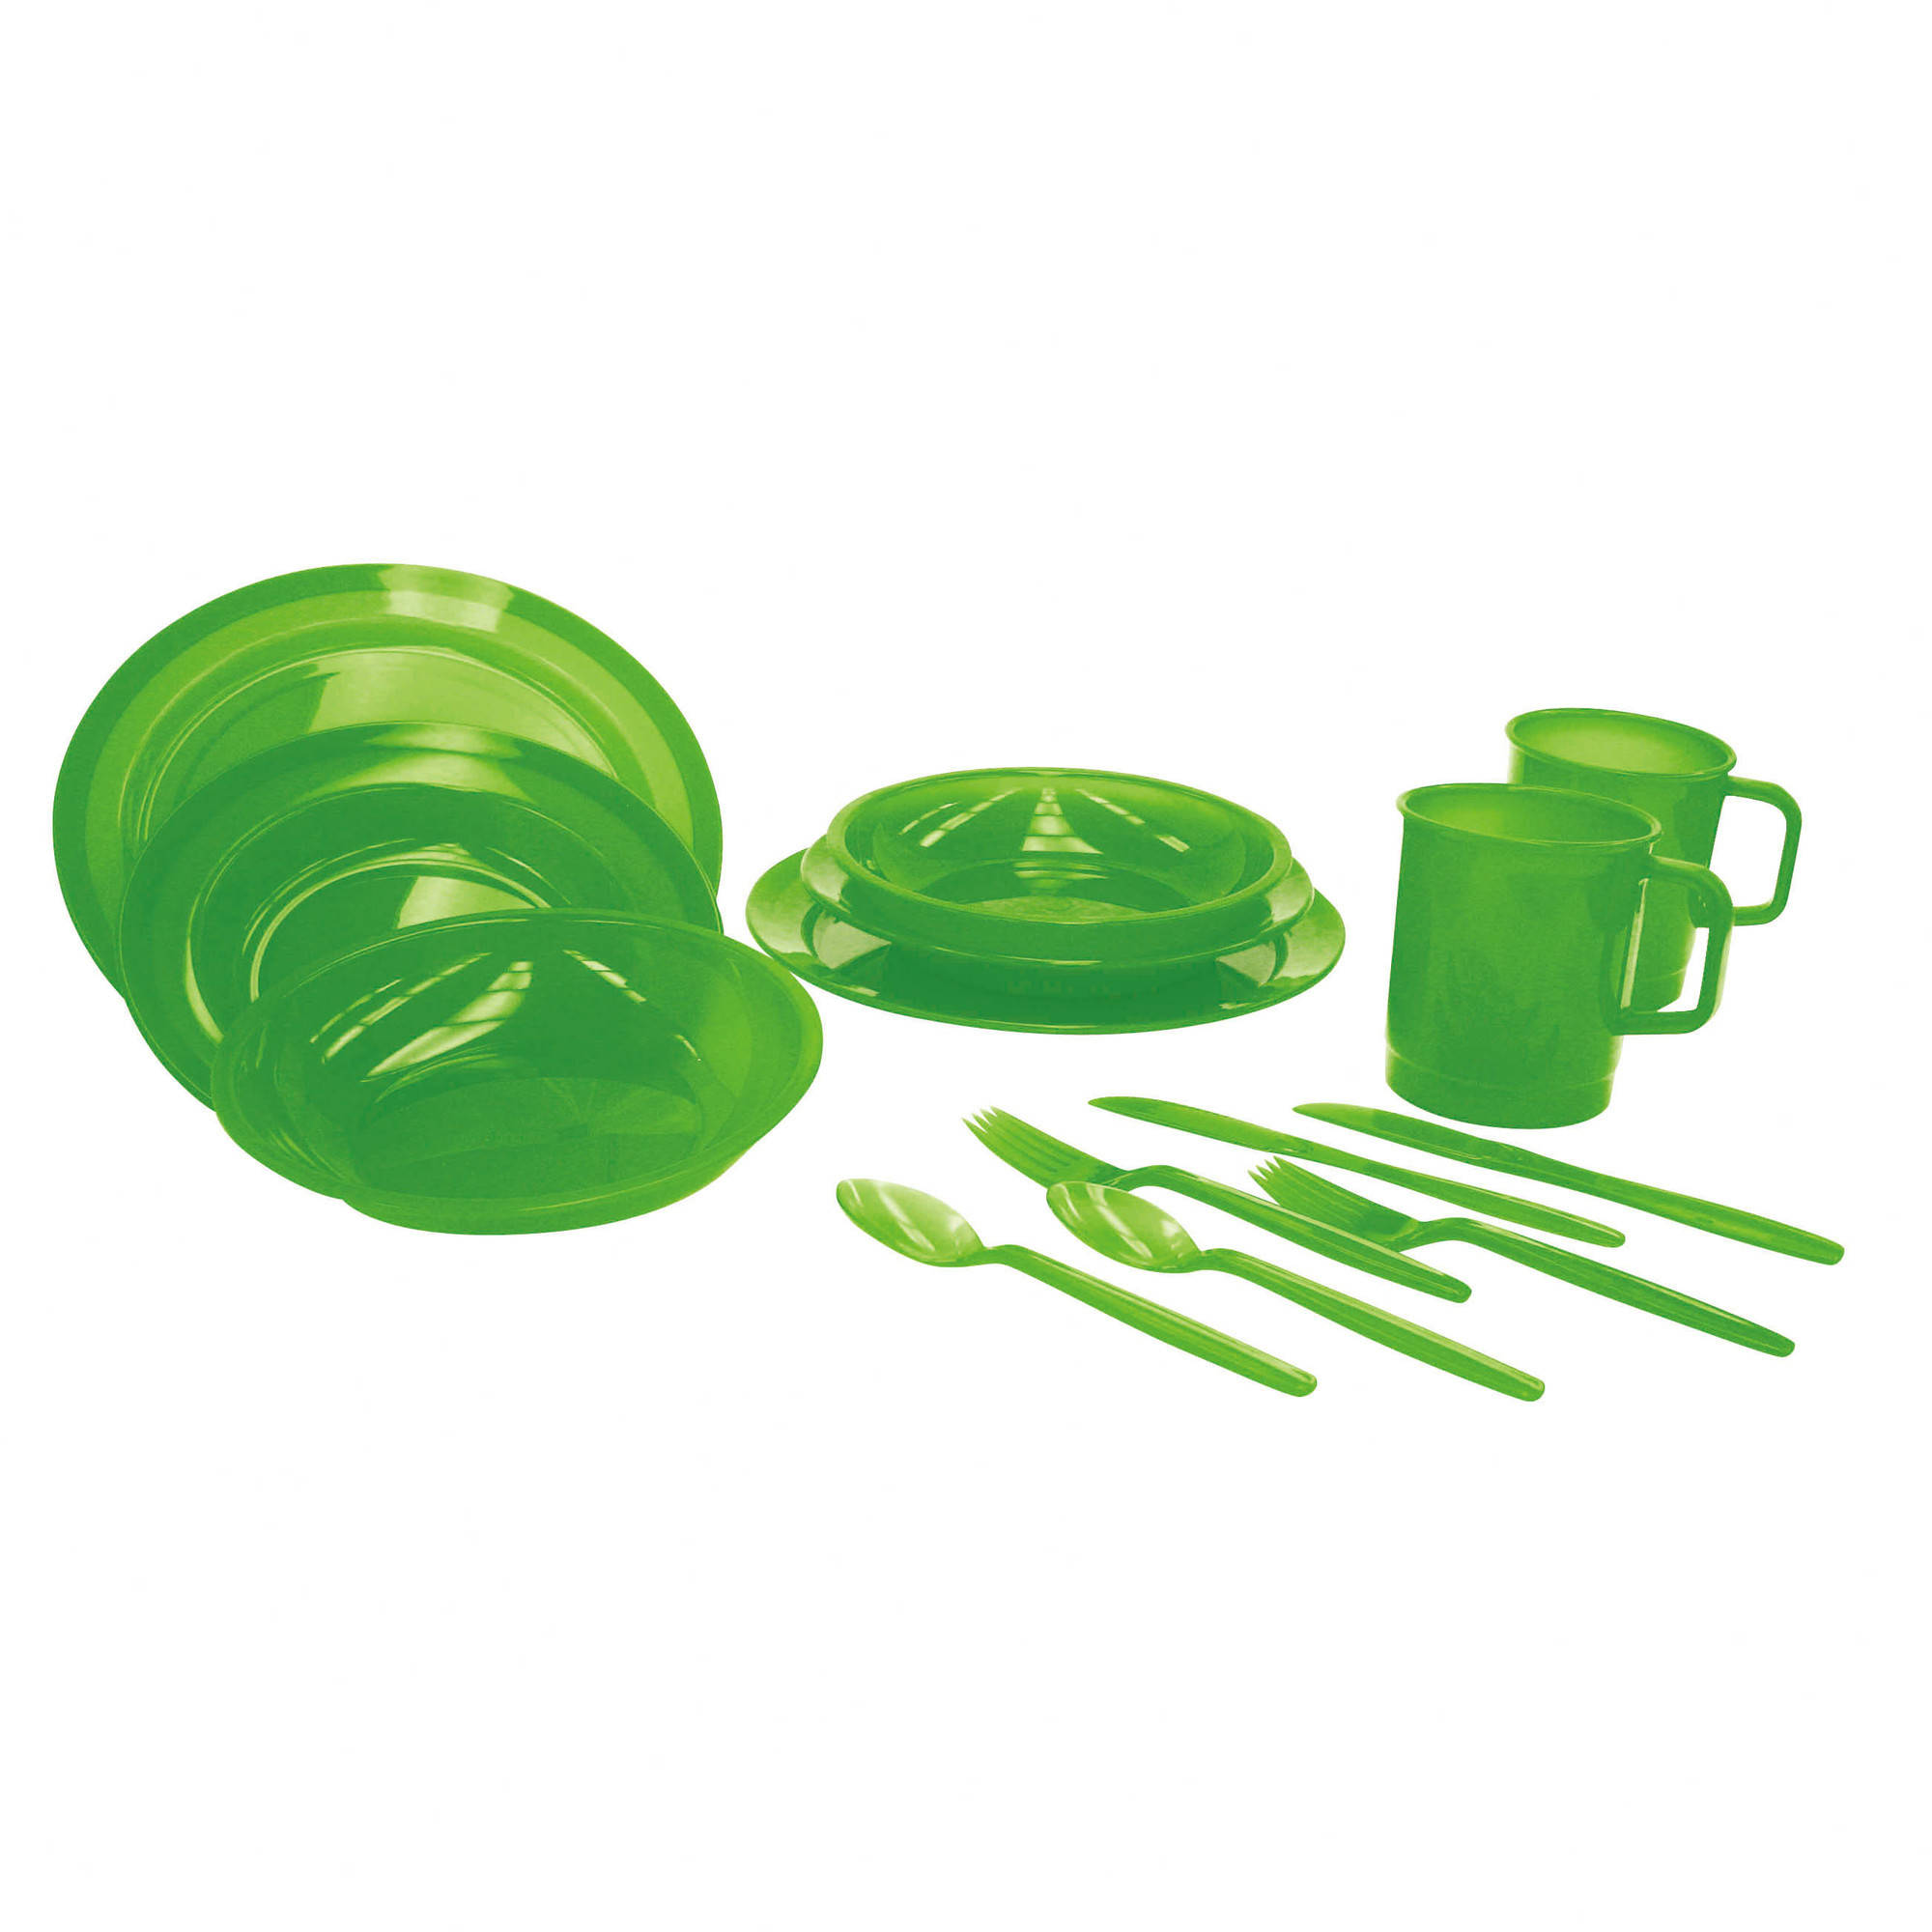 Stansport Cook Set 2 Party, Green by Generic